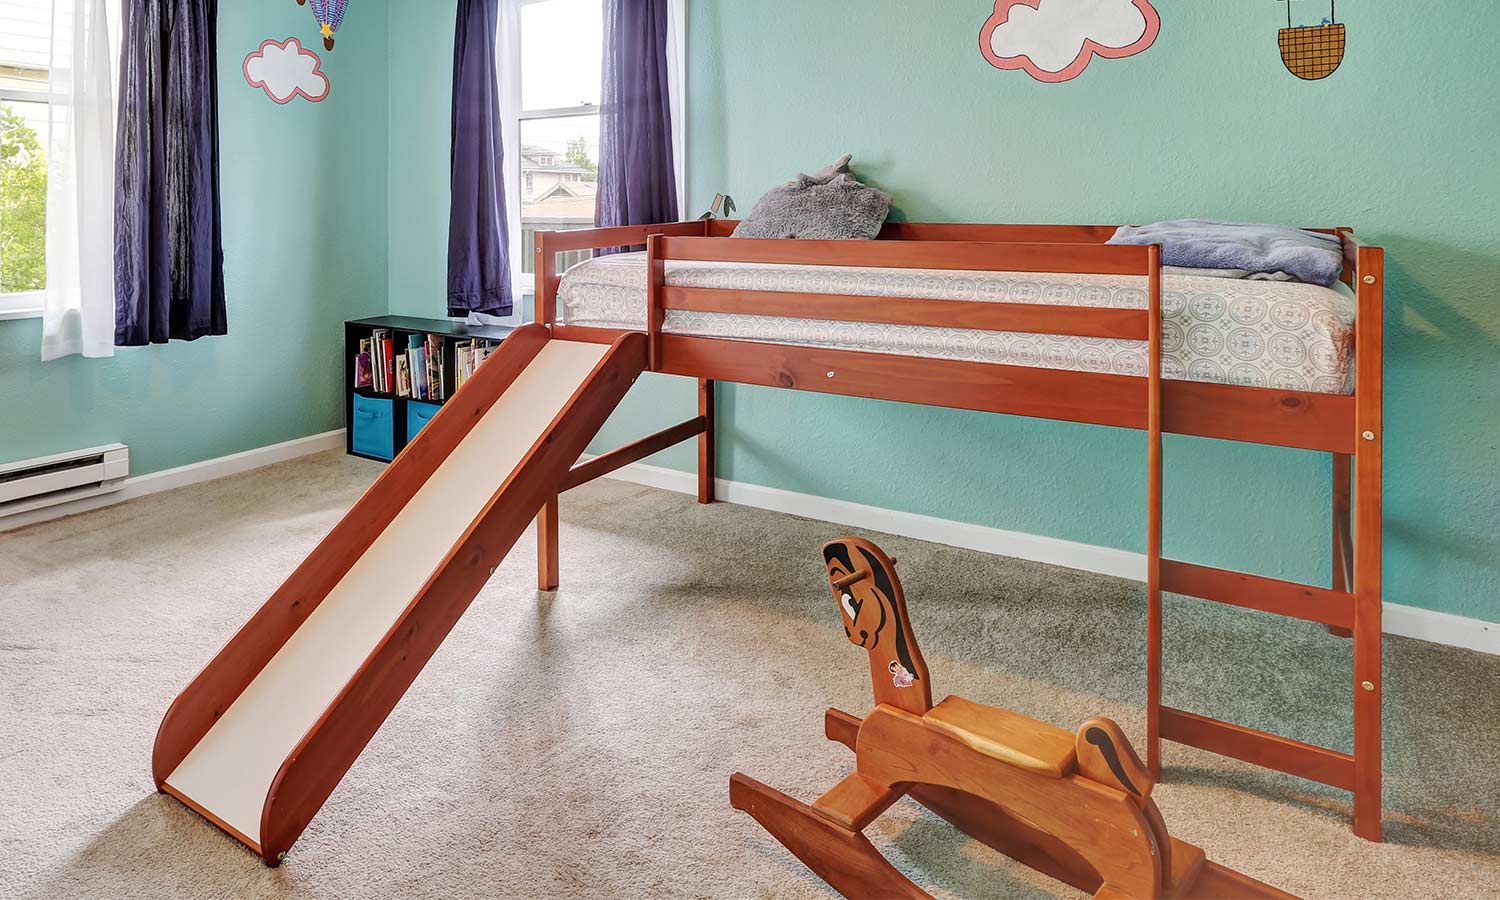 A bed lifted off the ground with a slide attached.